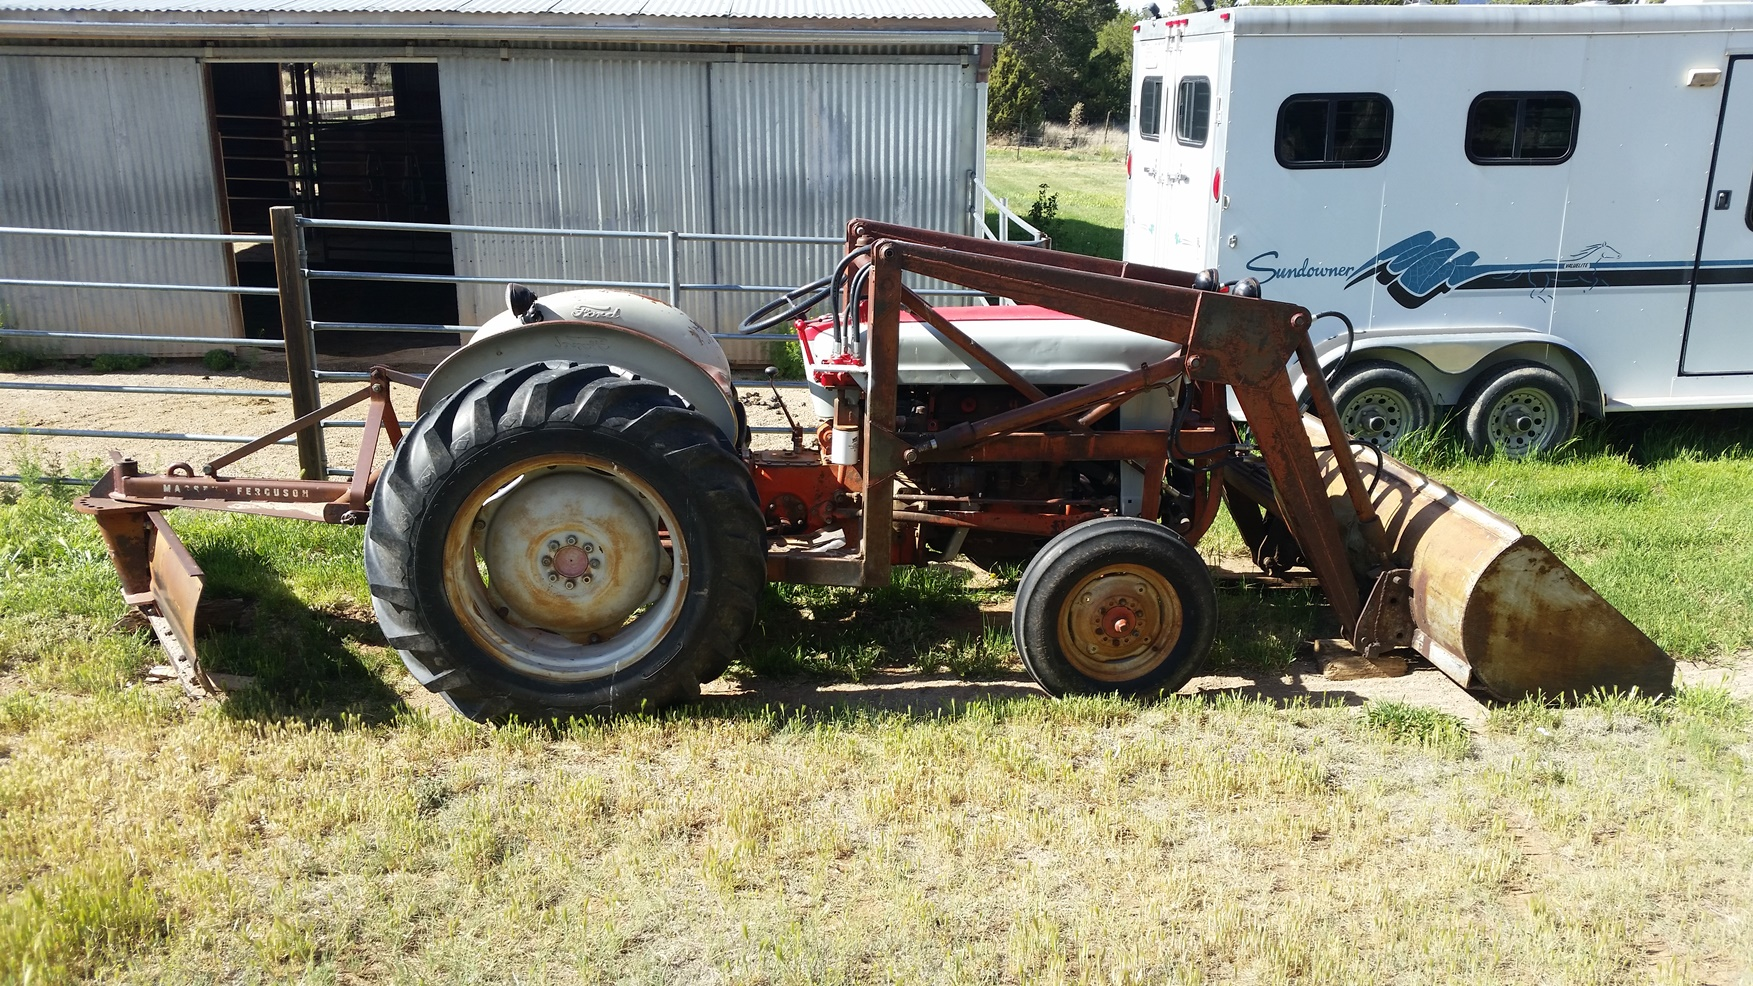 861 ford tractor wiring harness wiring diagram libraries 7700 Ford Diesel Tractor Wiring Harness Diagram norm kolb\\u0027s ford 861 jackson power steering861 ford tractor wiring harness 14